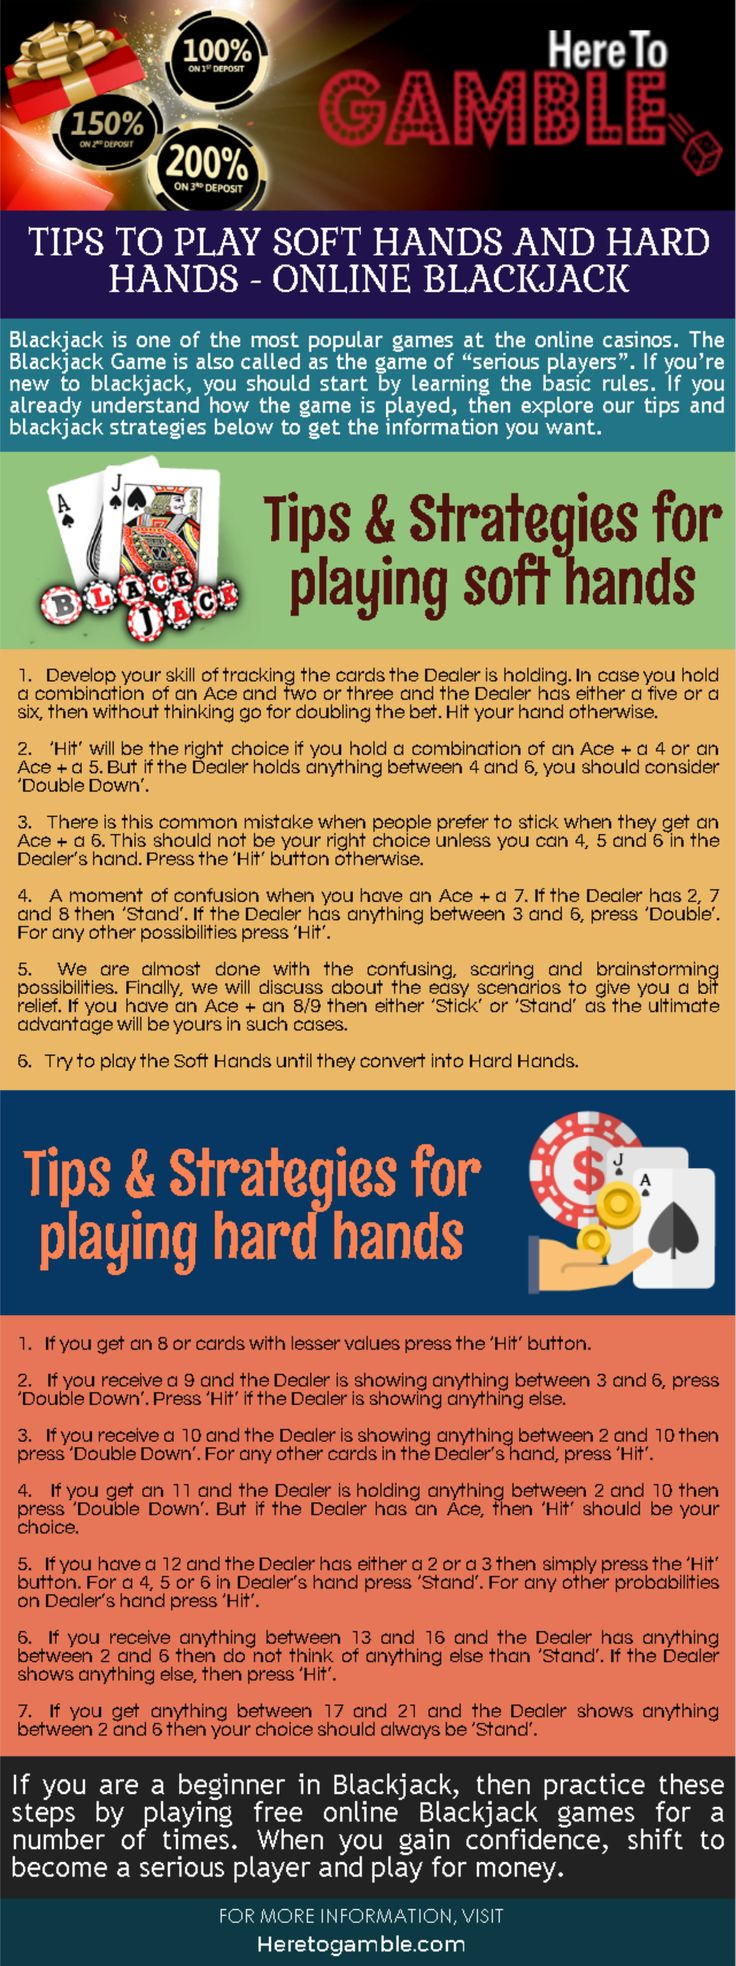 Infographic Overview Online Blackjack Tips to Play Soft hands and Hard Hands by HereToGamble.com #Casino #Tips